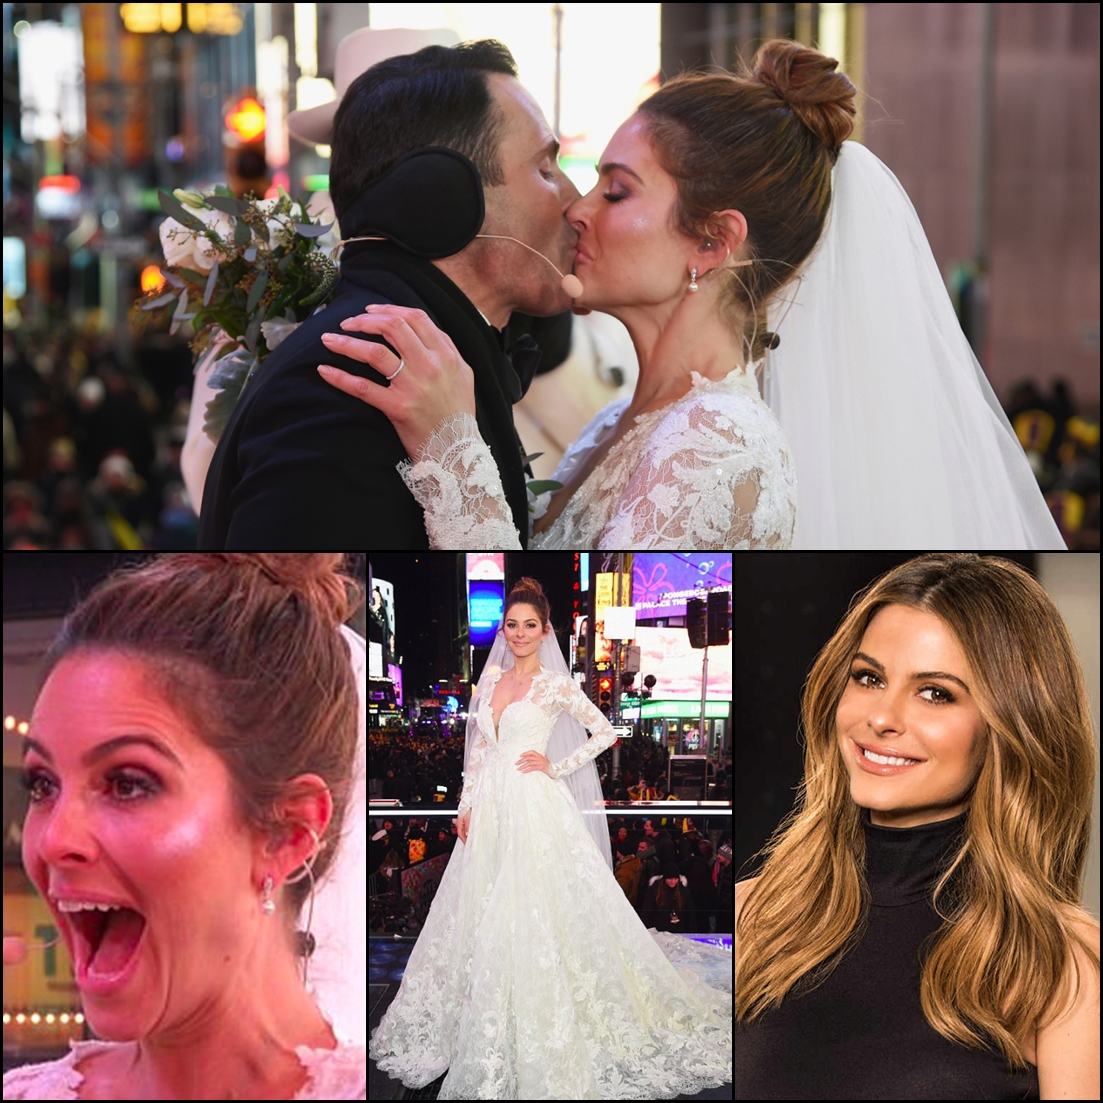 Last night, Maria Menounos got married in a surprise ceremony officiated by Steven Harvey on live TV